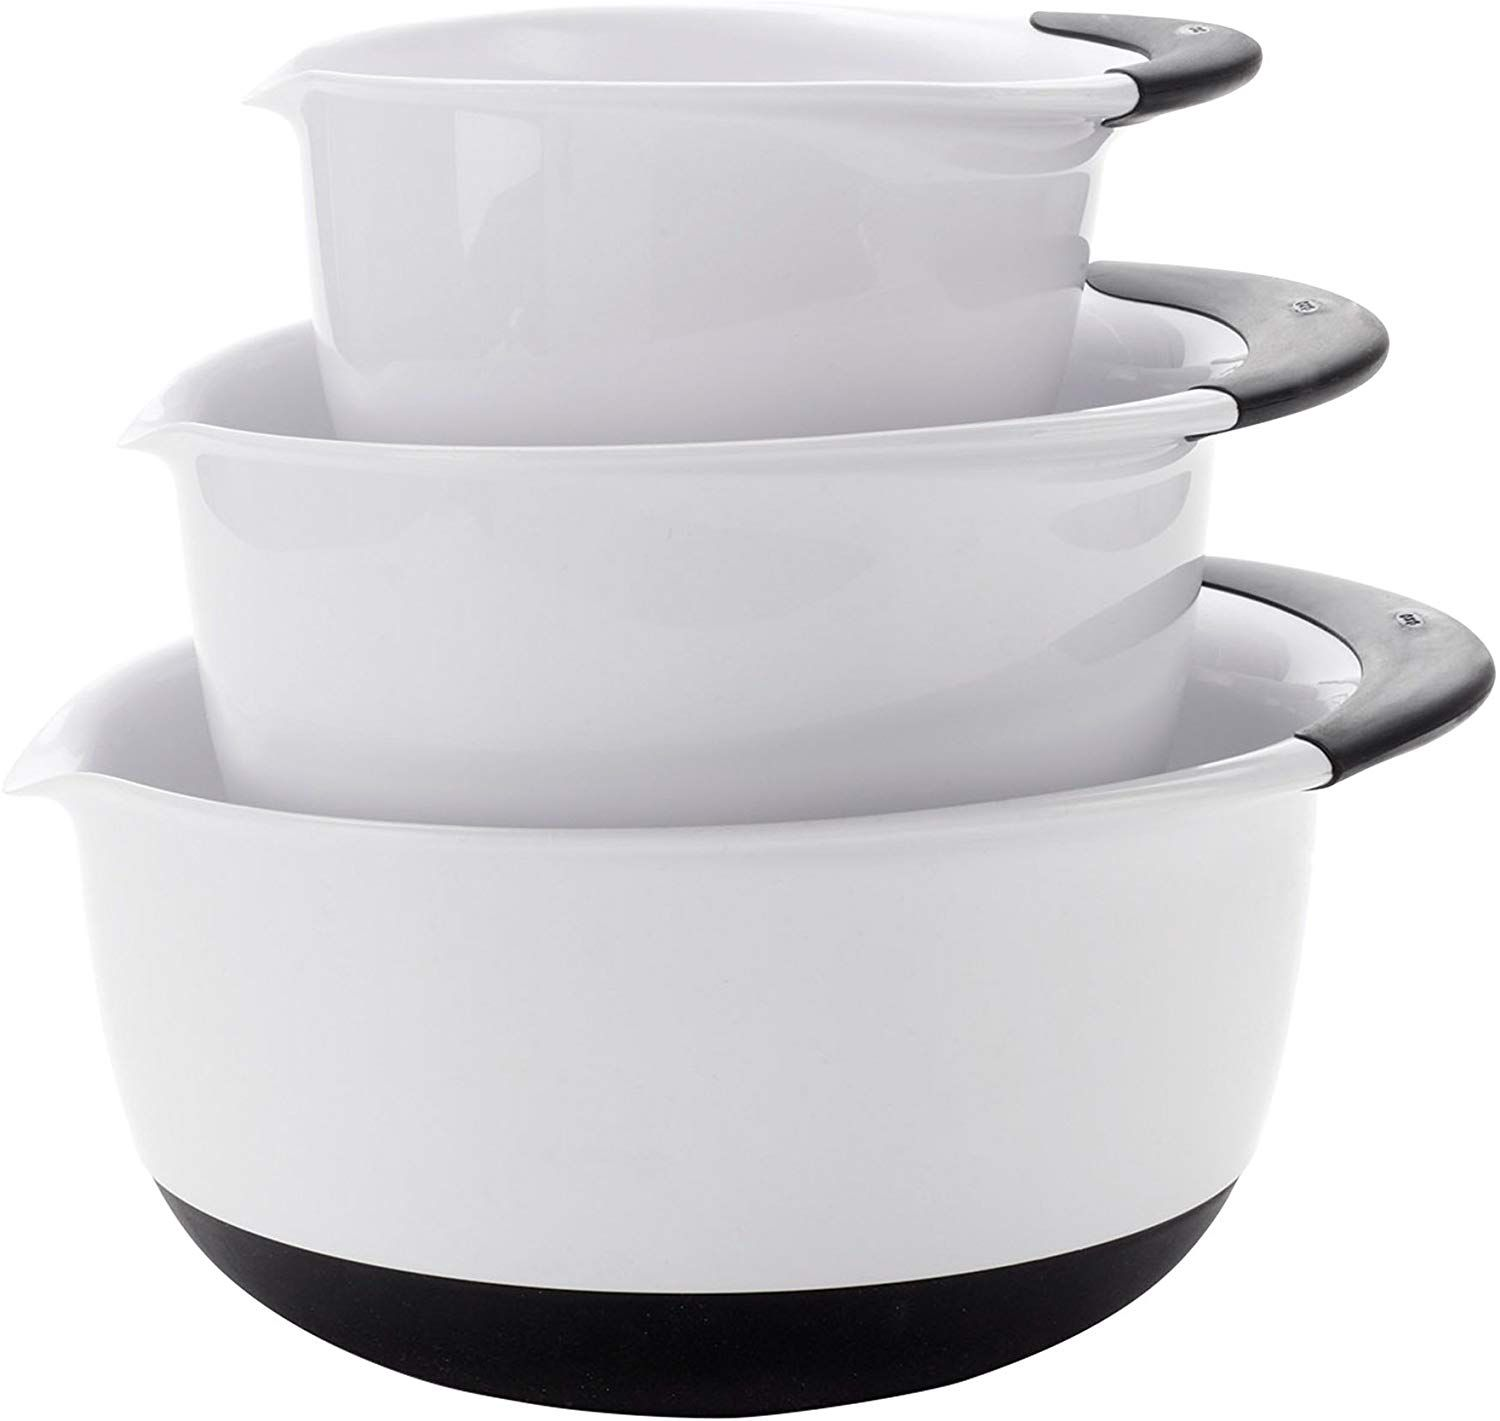 OXO Good Grips Mixing Bowl Set with Black Handles